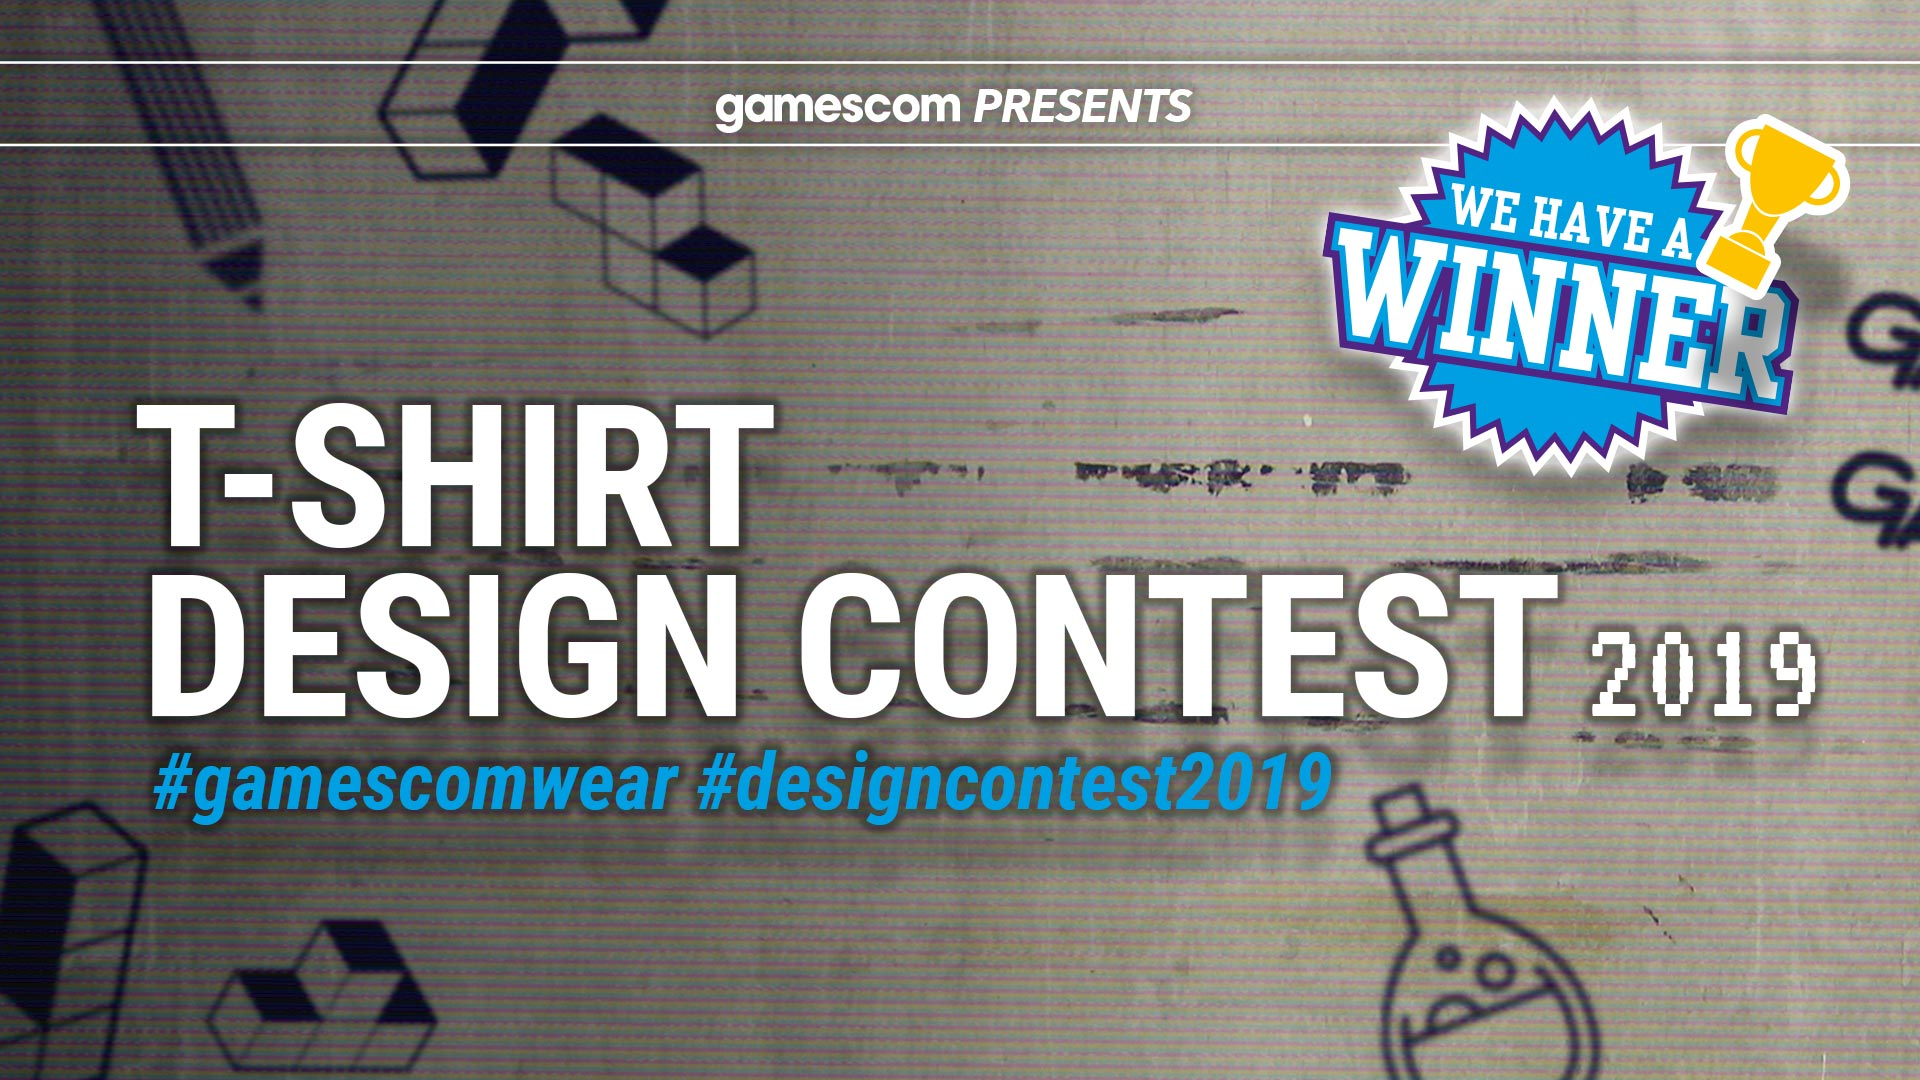 Top 5 Gewinner des gamescomwear Design Contests von 2019